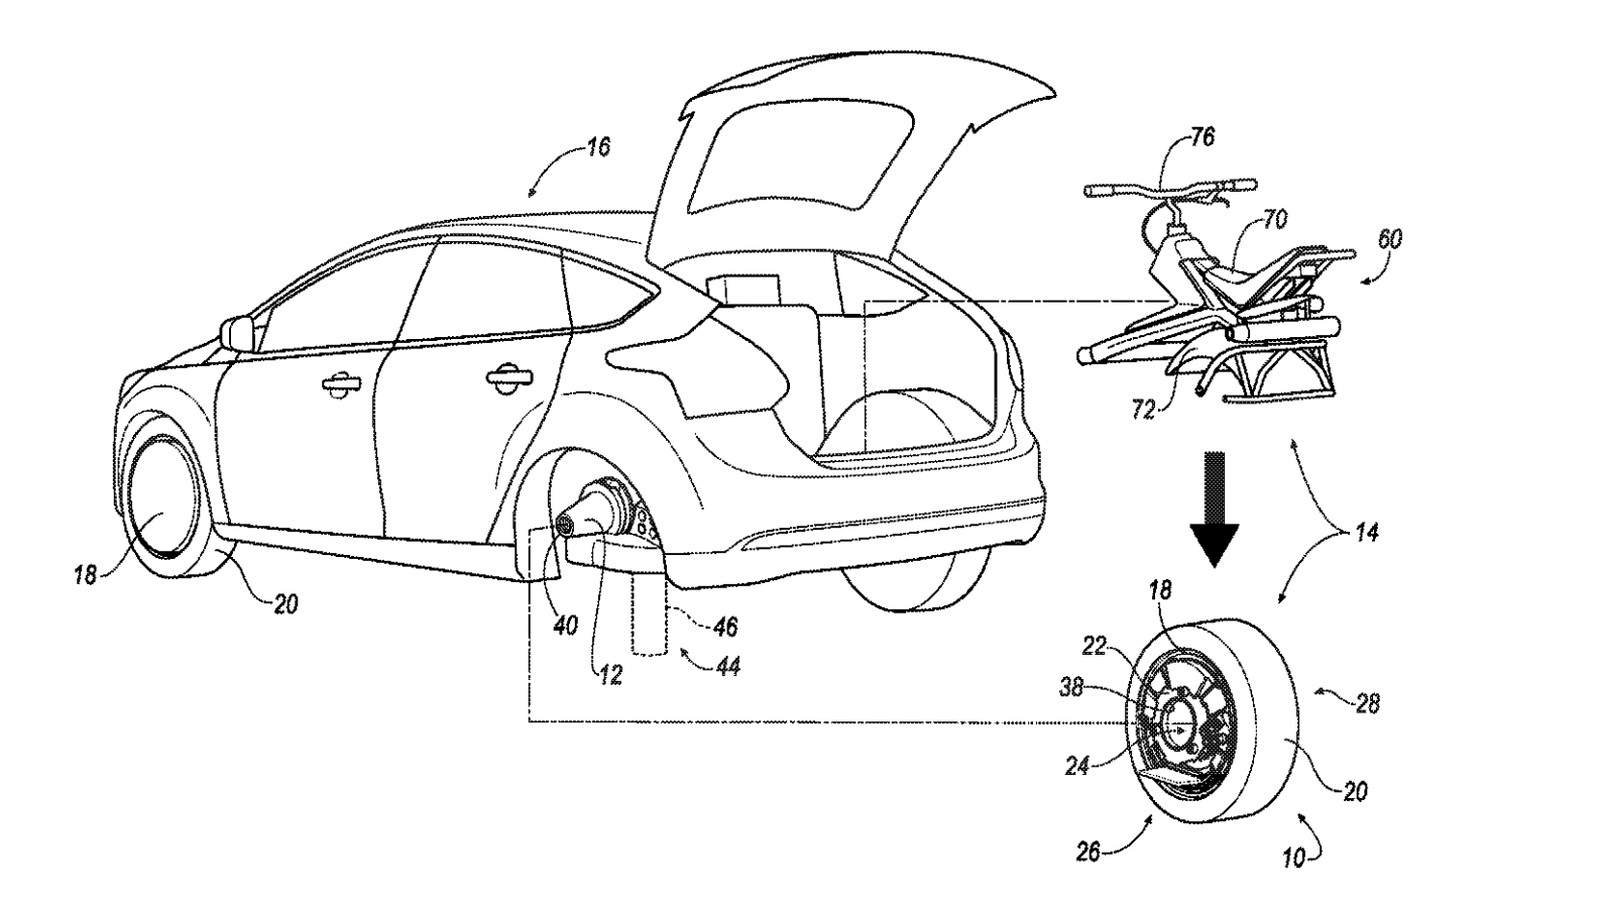 Ford files patent for rear tire that converts into an